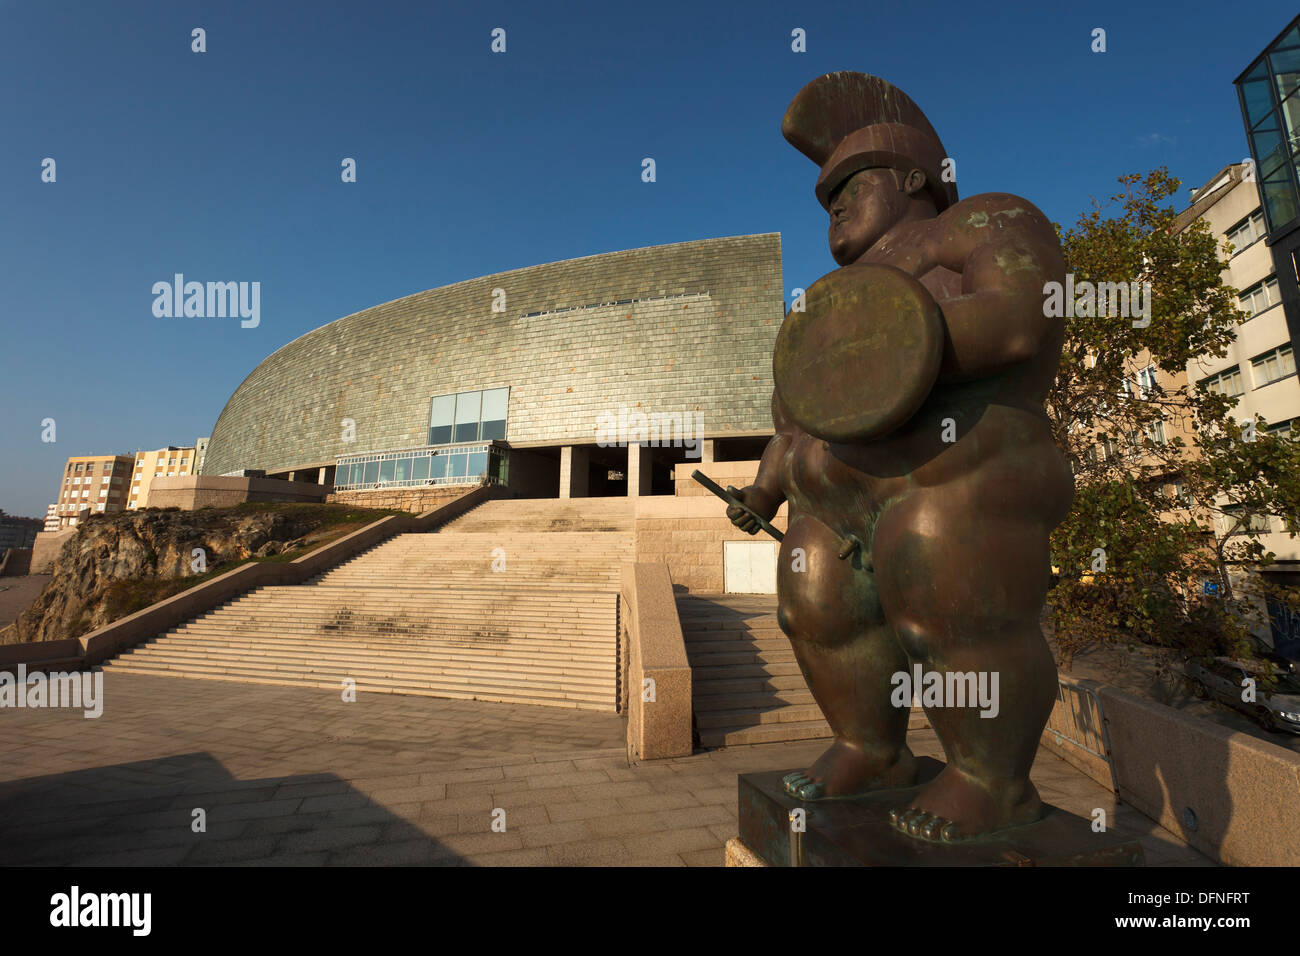 Bronzes statue  Roman warrior  by Fernando Botero, artist, sculptor, Museo Domus, Casa del Hombre, House of the Humans back, arc - Stock Image